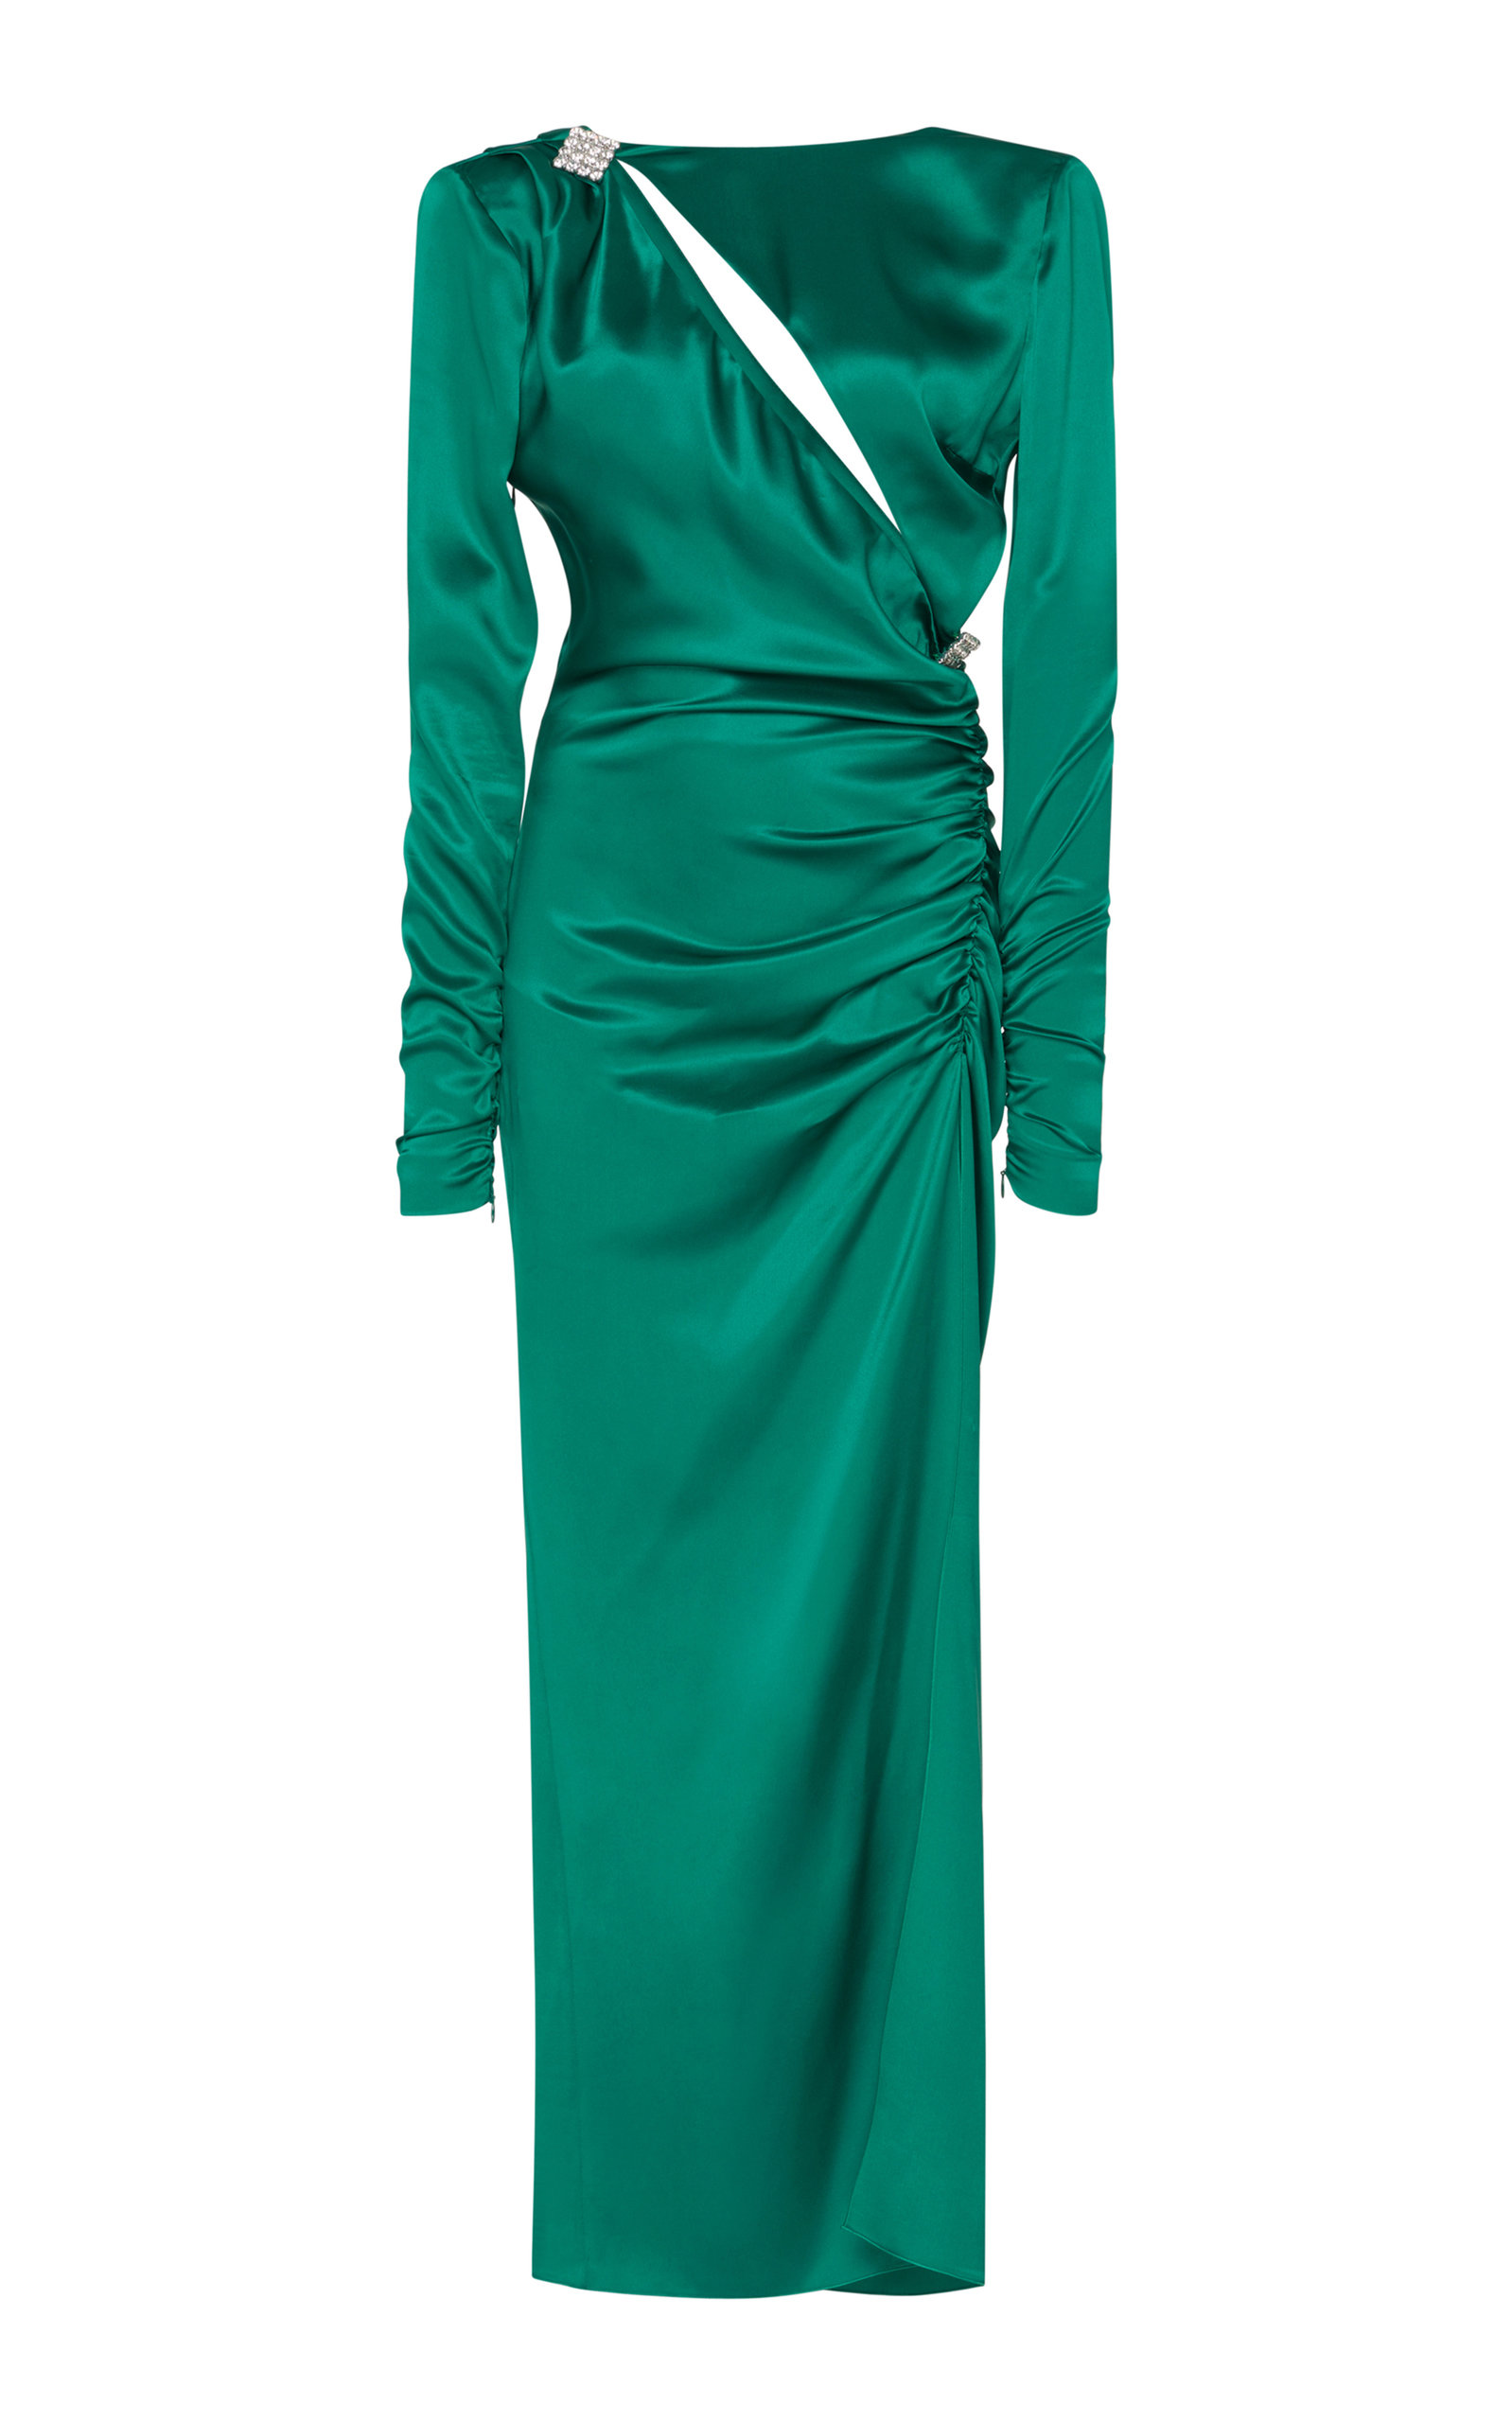 ALESSANDRA RICH Ruched Crystal-Embellished Silk-Satin Midi Dress in Emerald